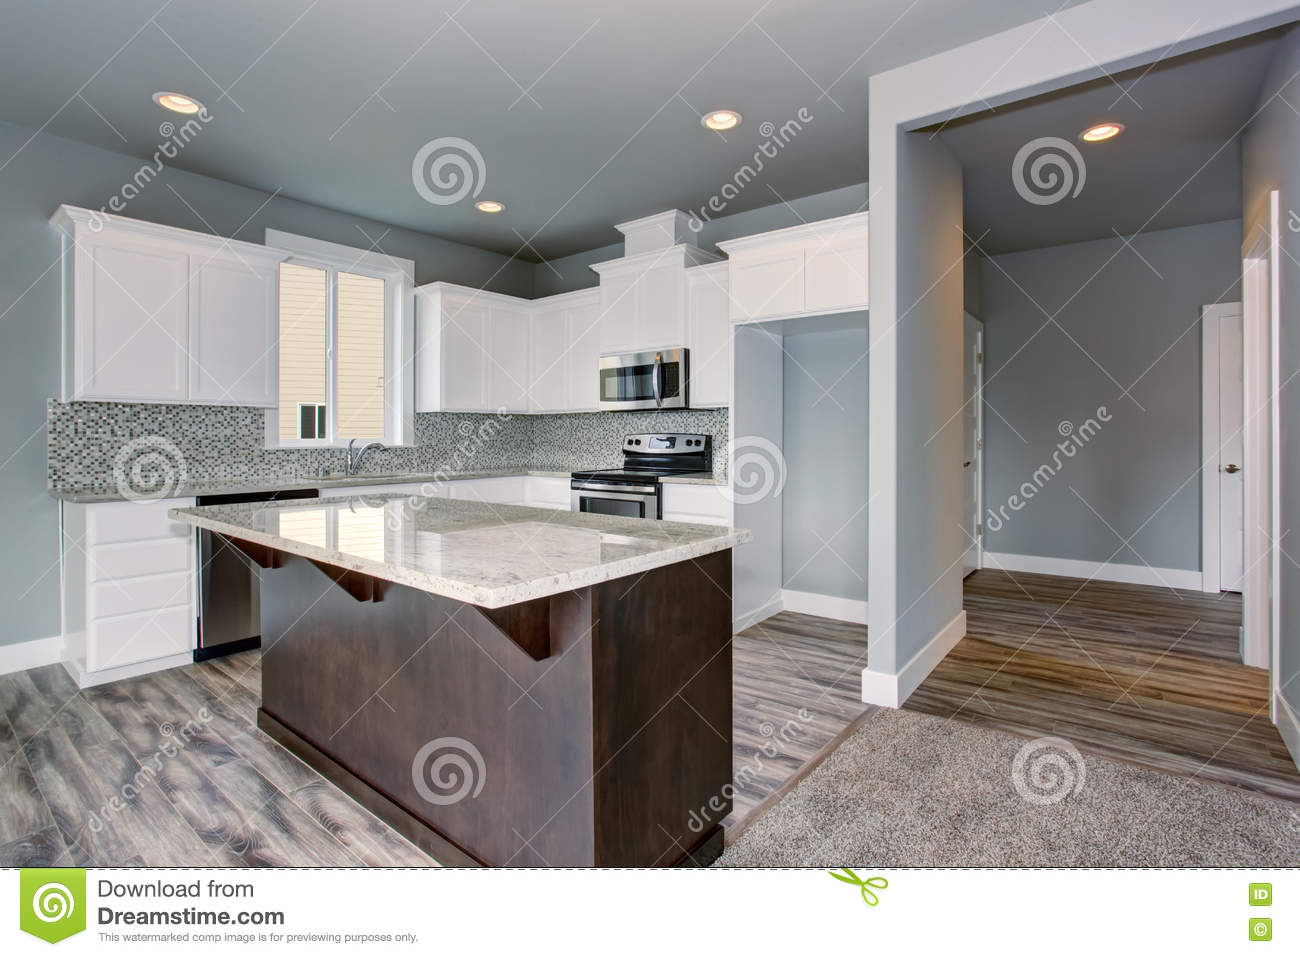 Grey and white kitchen interior with dark brown kitchen for Grey and brown kitchen